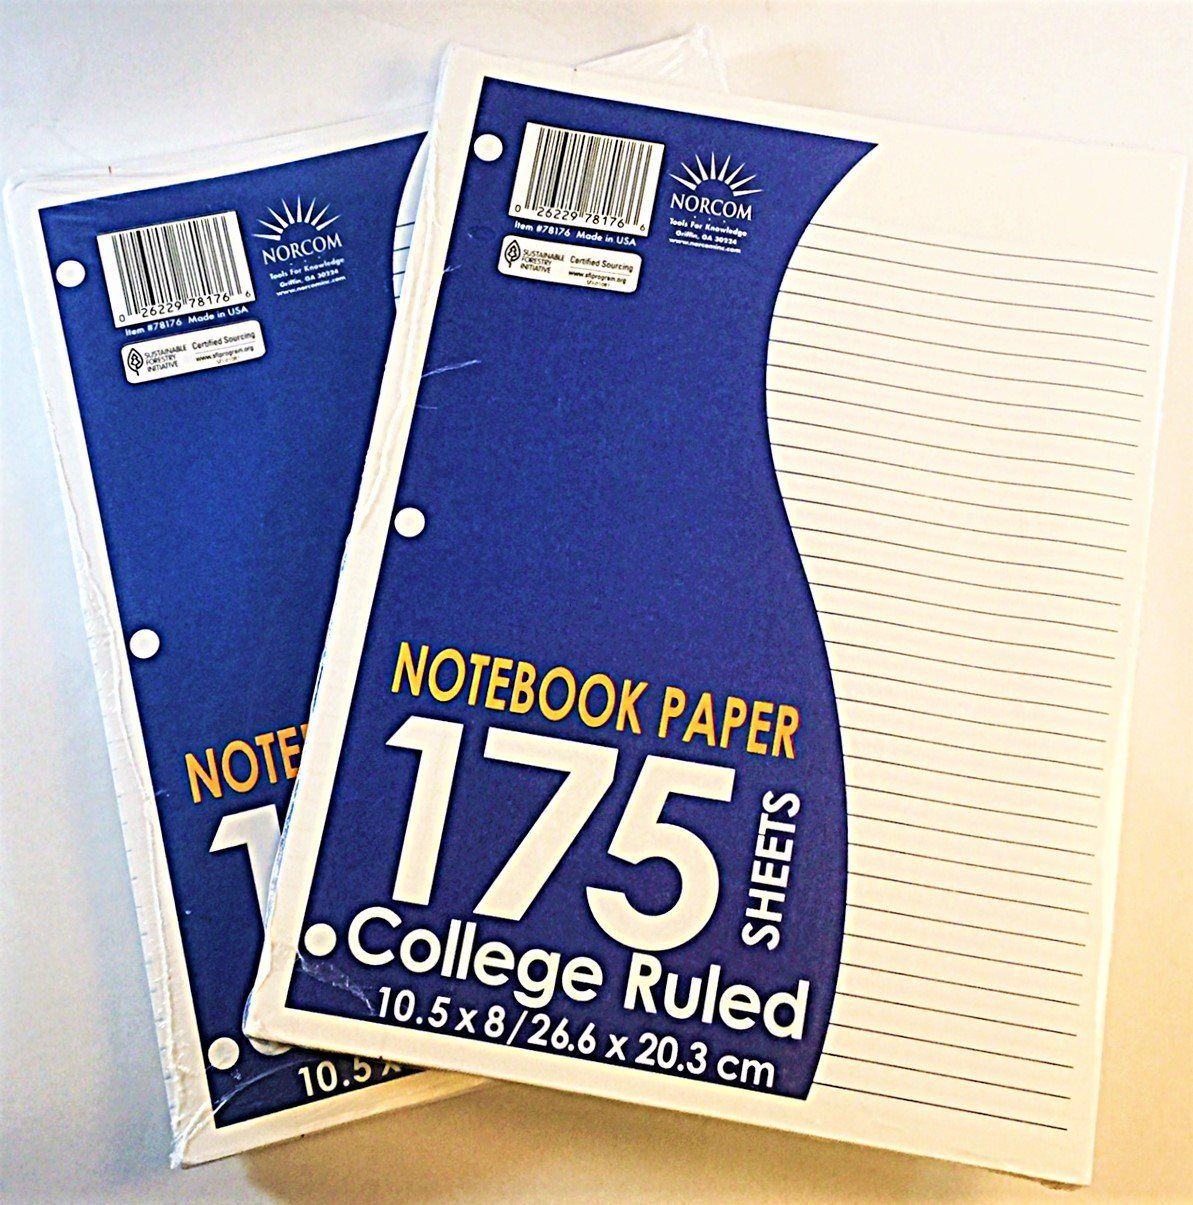 NOTEBOOK FILLER PAPER 2 packs 175 sheets each total 350 sheets.